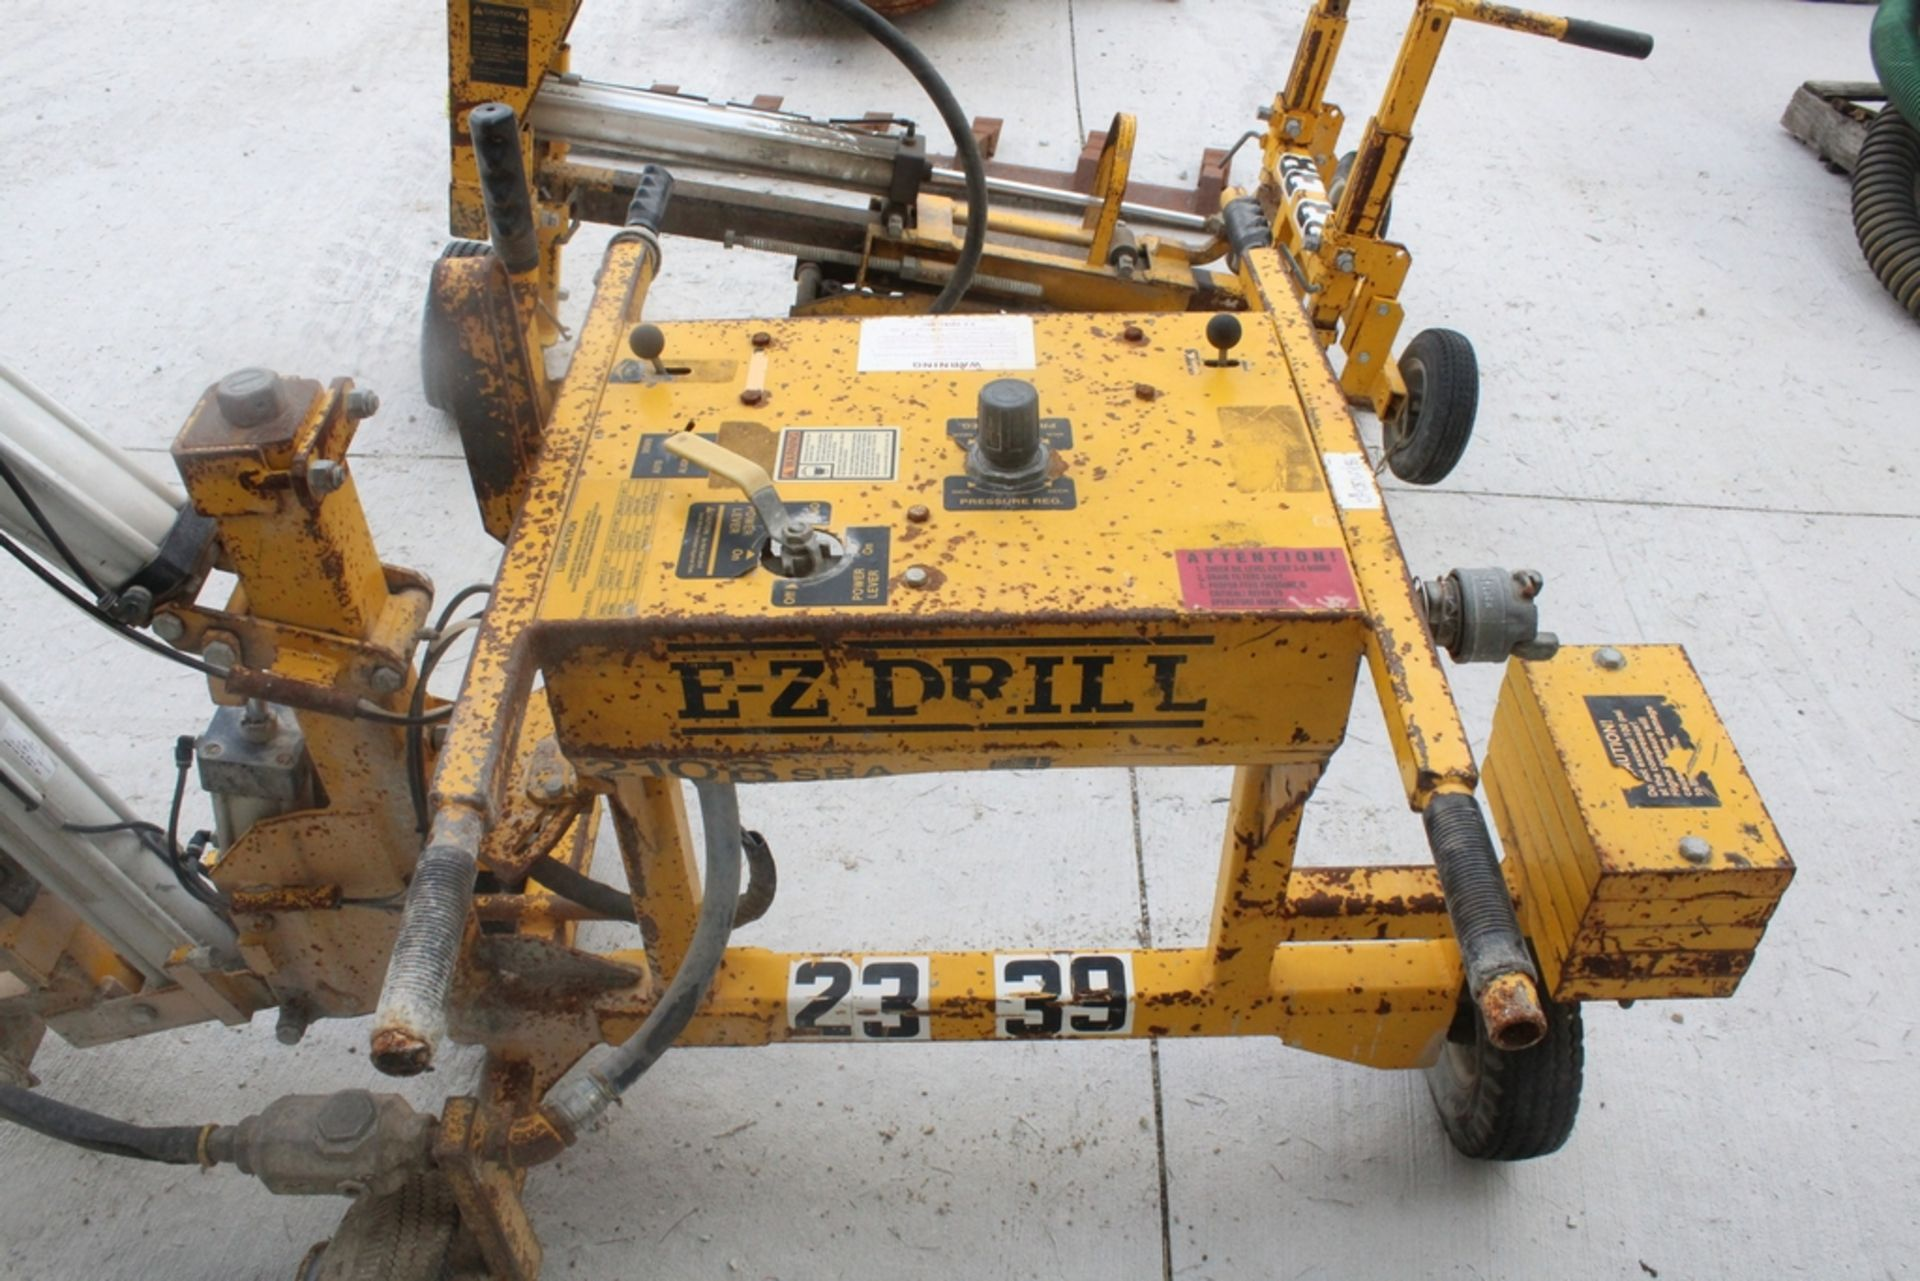 EZ-DRILL HORIZONTAL REBAR DRILL MODEL 210B, S/N 2075, WITH CORE DRILL ATTACHMENT - Image 5 of 5